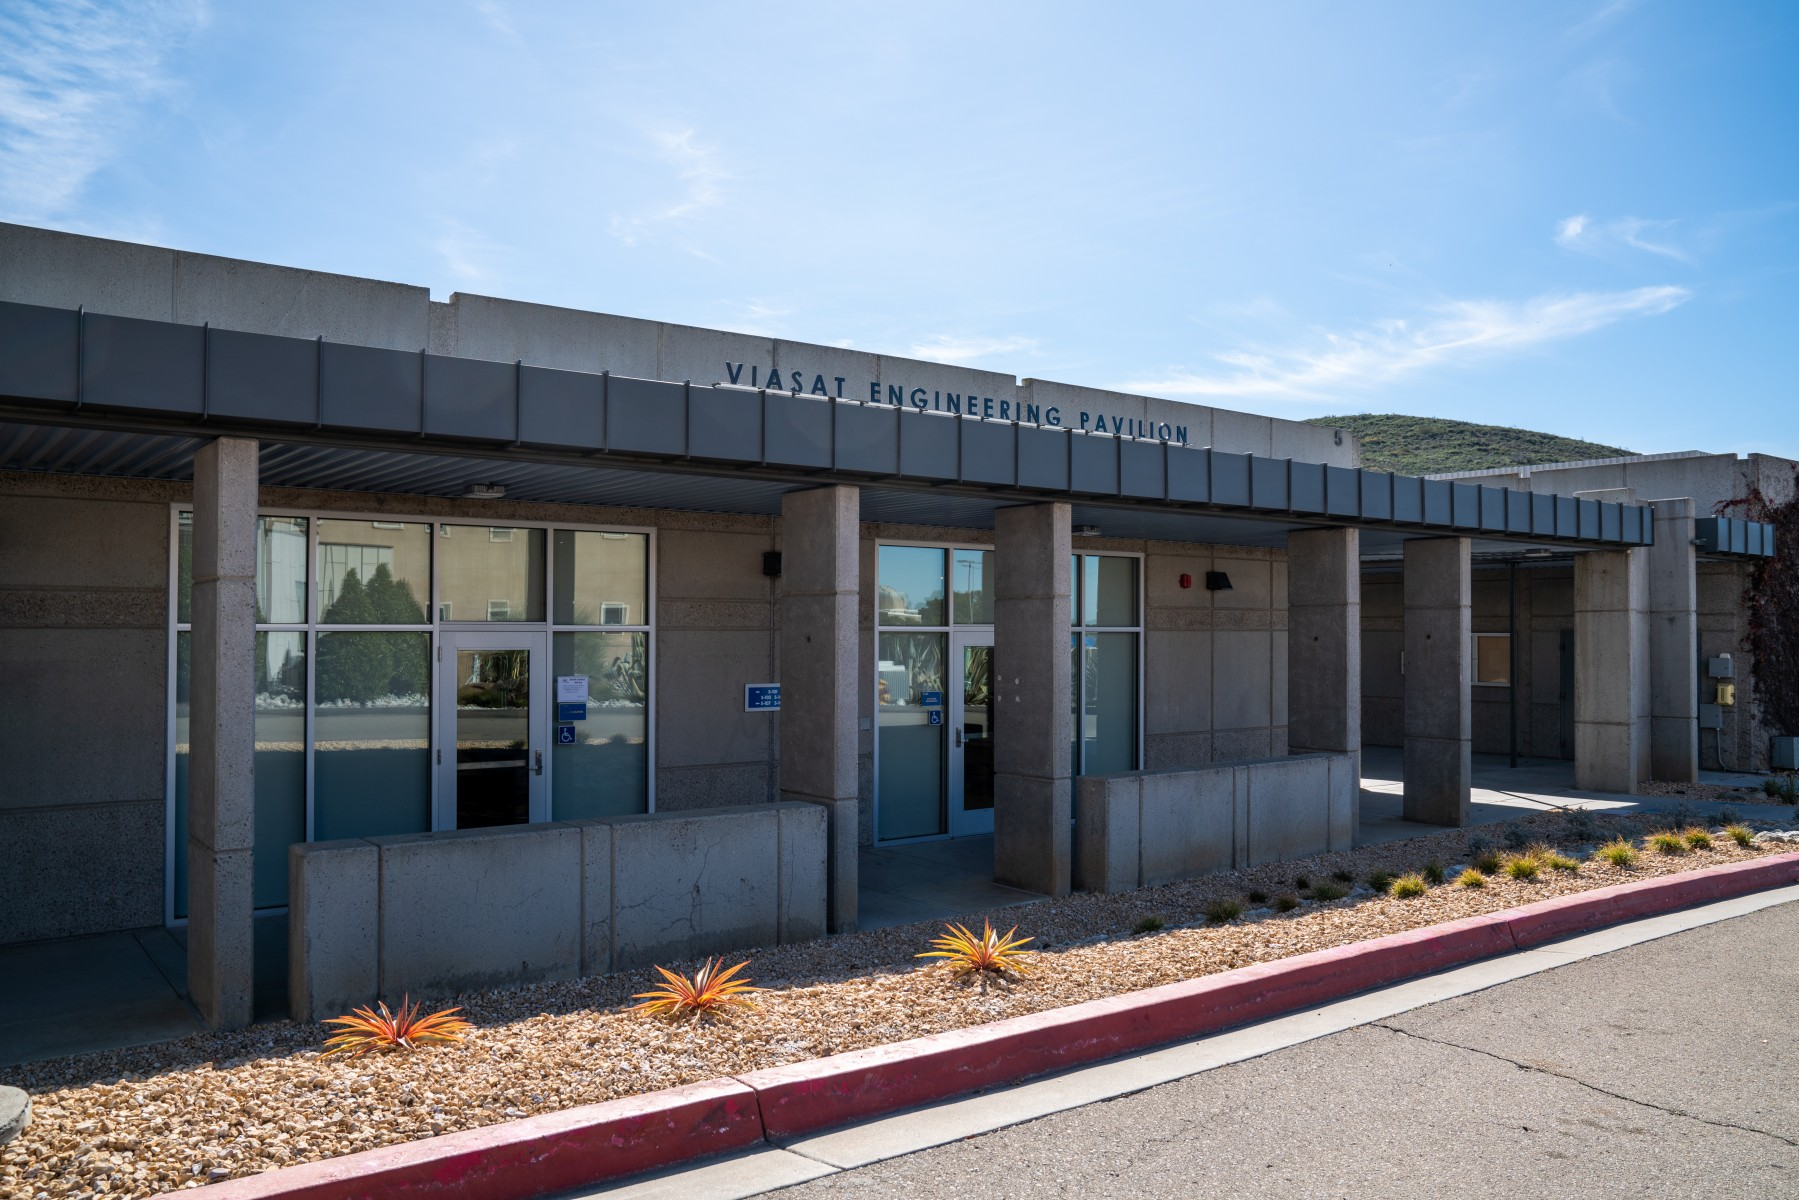 The Viasat Engineering Pavilion is home to CSUSM's programs in electrical and software engineering.